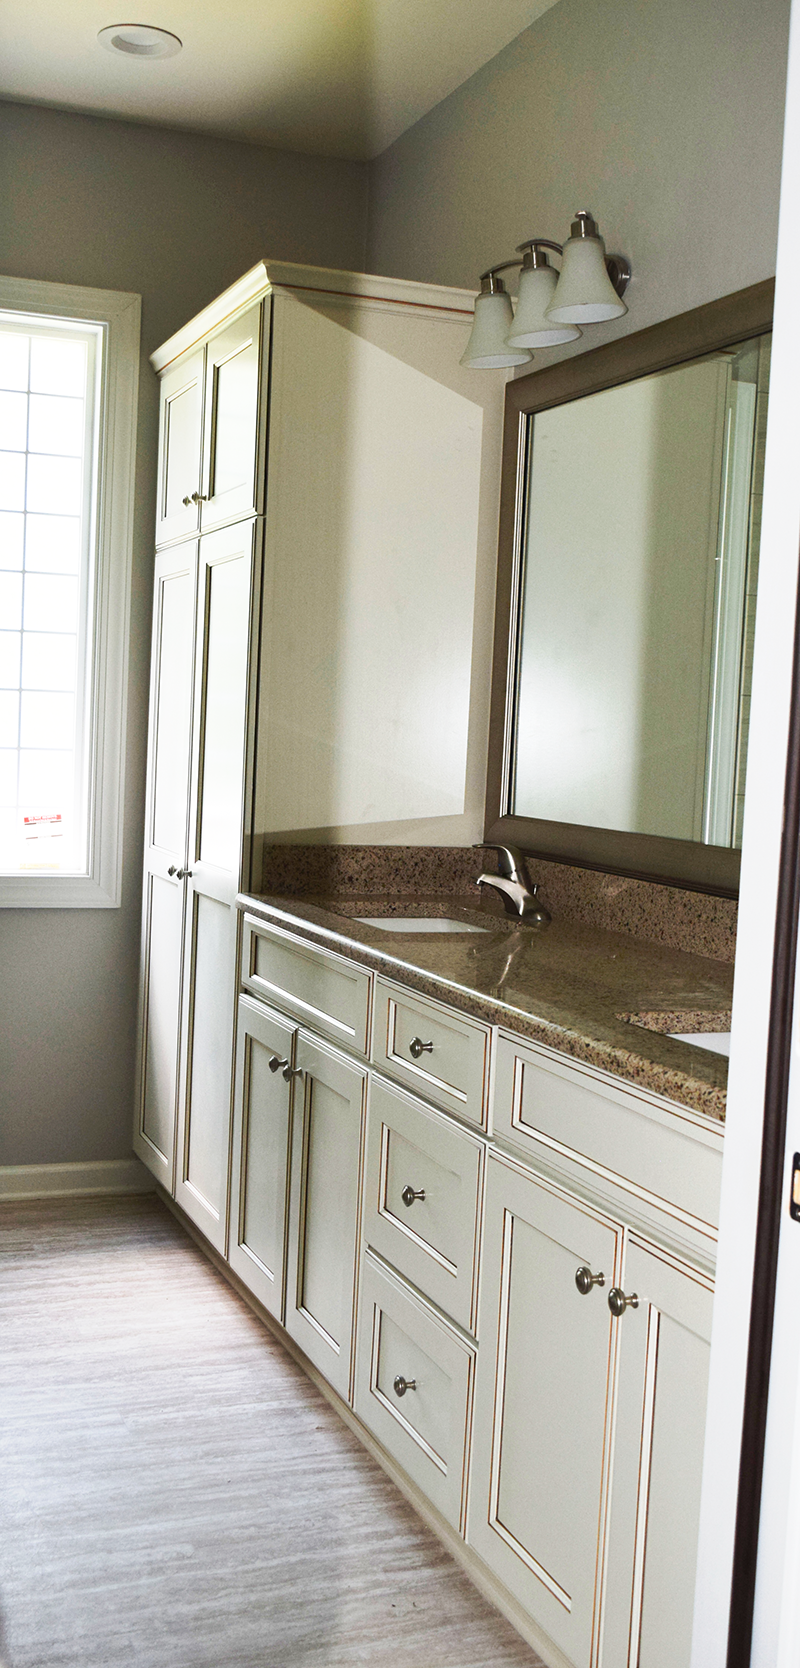 charlotte bathroom remodeling contractor - Bathroom Remodeling Charlotte